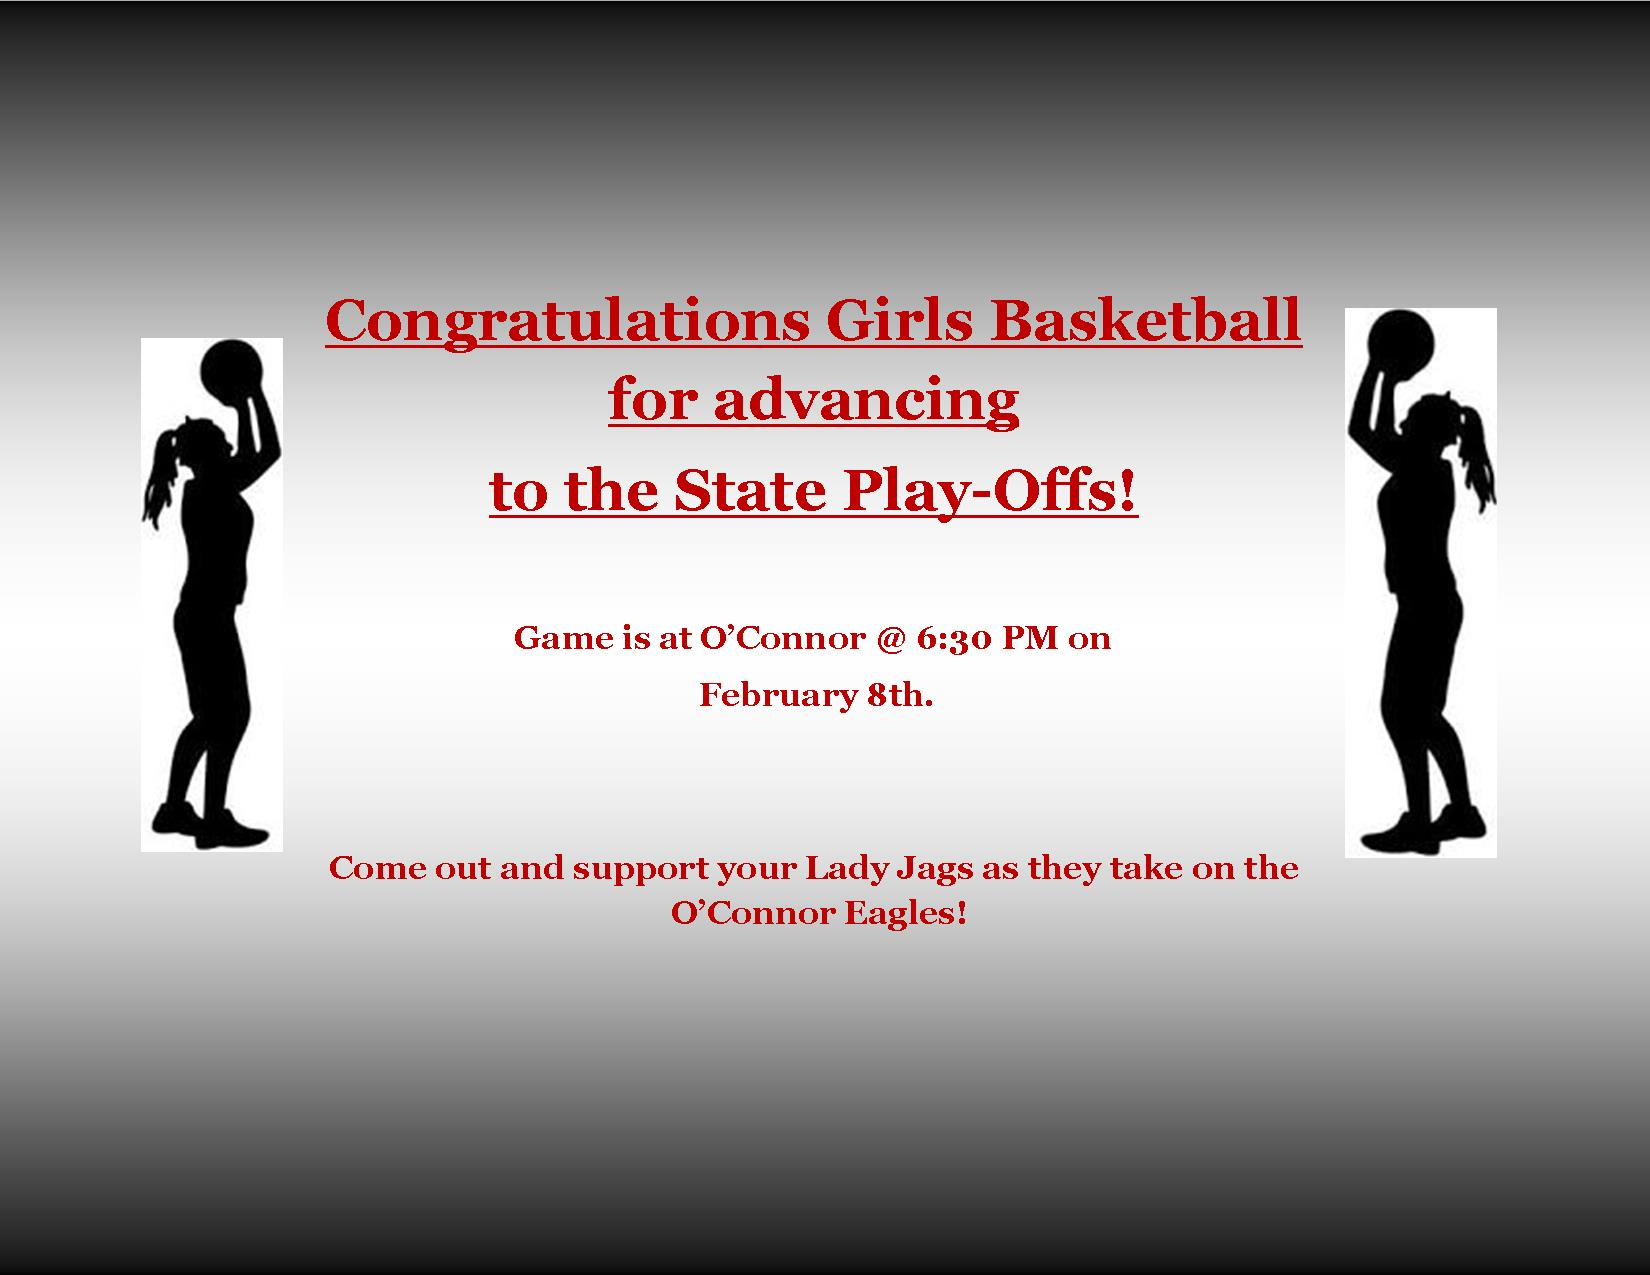 Girls Basketball Advance to the Play-offs!! Come out and support your Lady Jags at O'Connor, February 8th @ 6:30 PM!